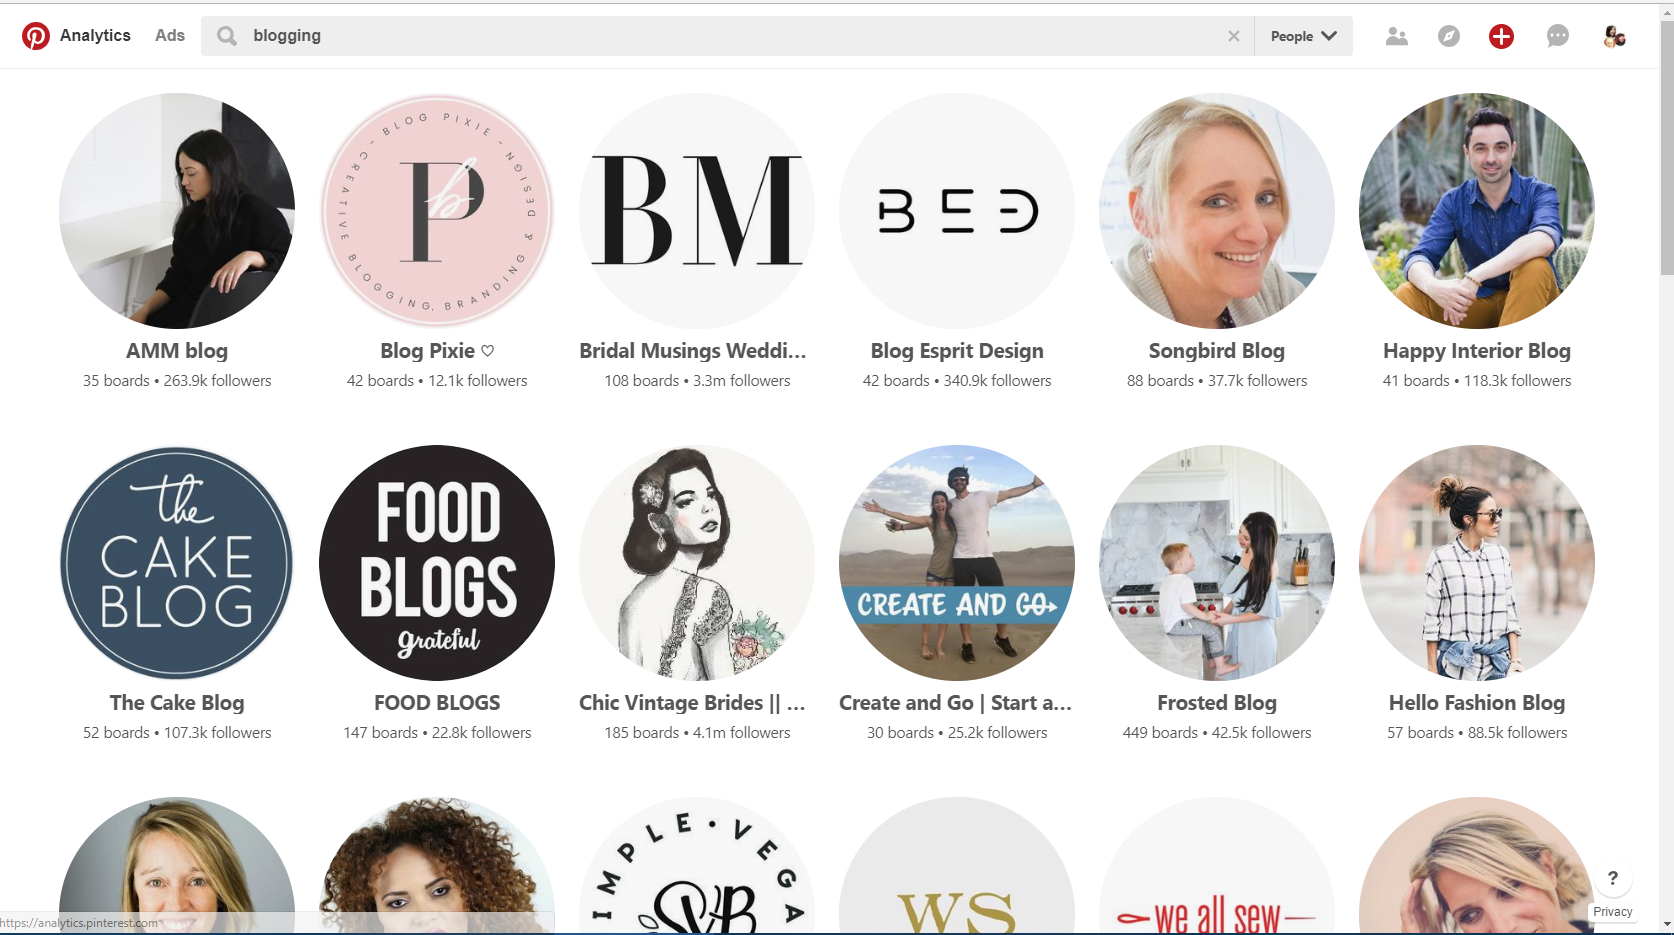 How to find Pinterest group boards: Look for influencer in Pinterest